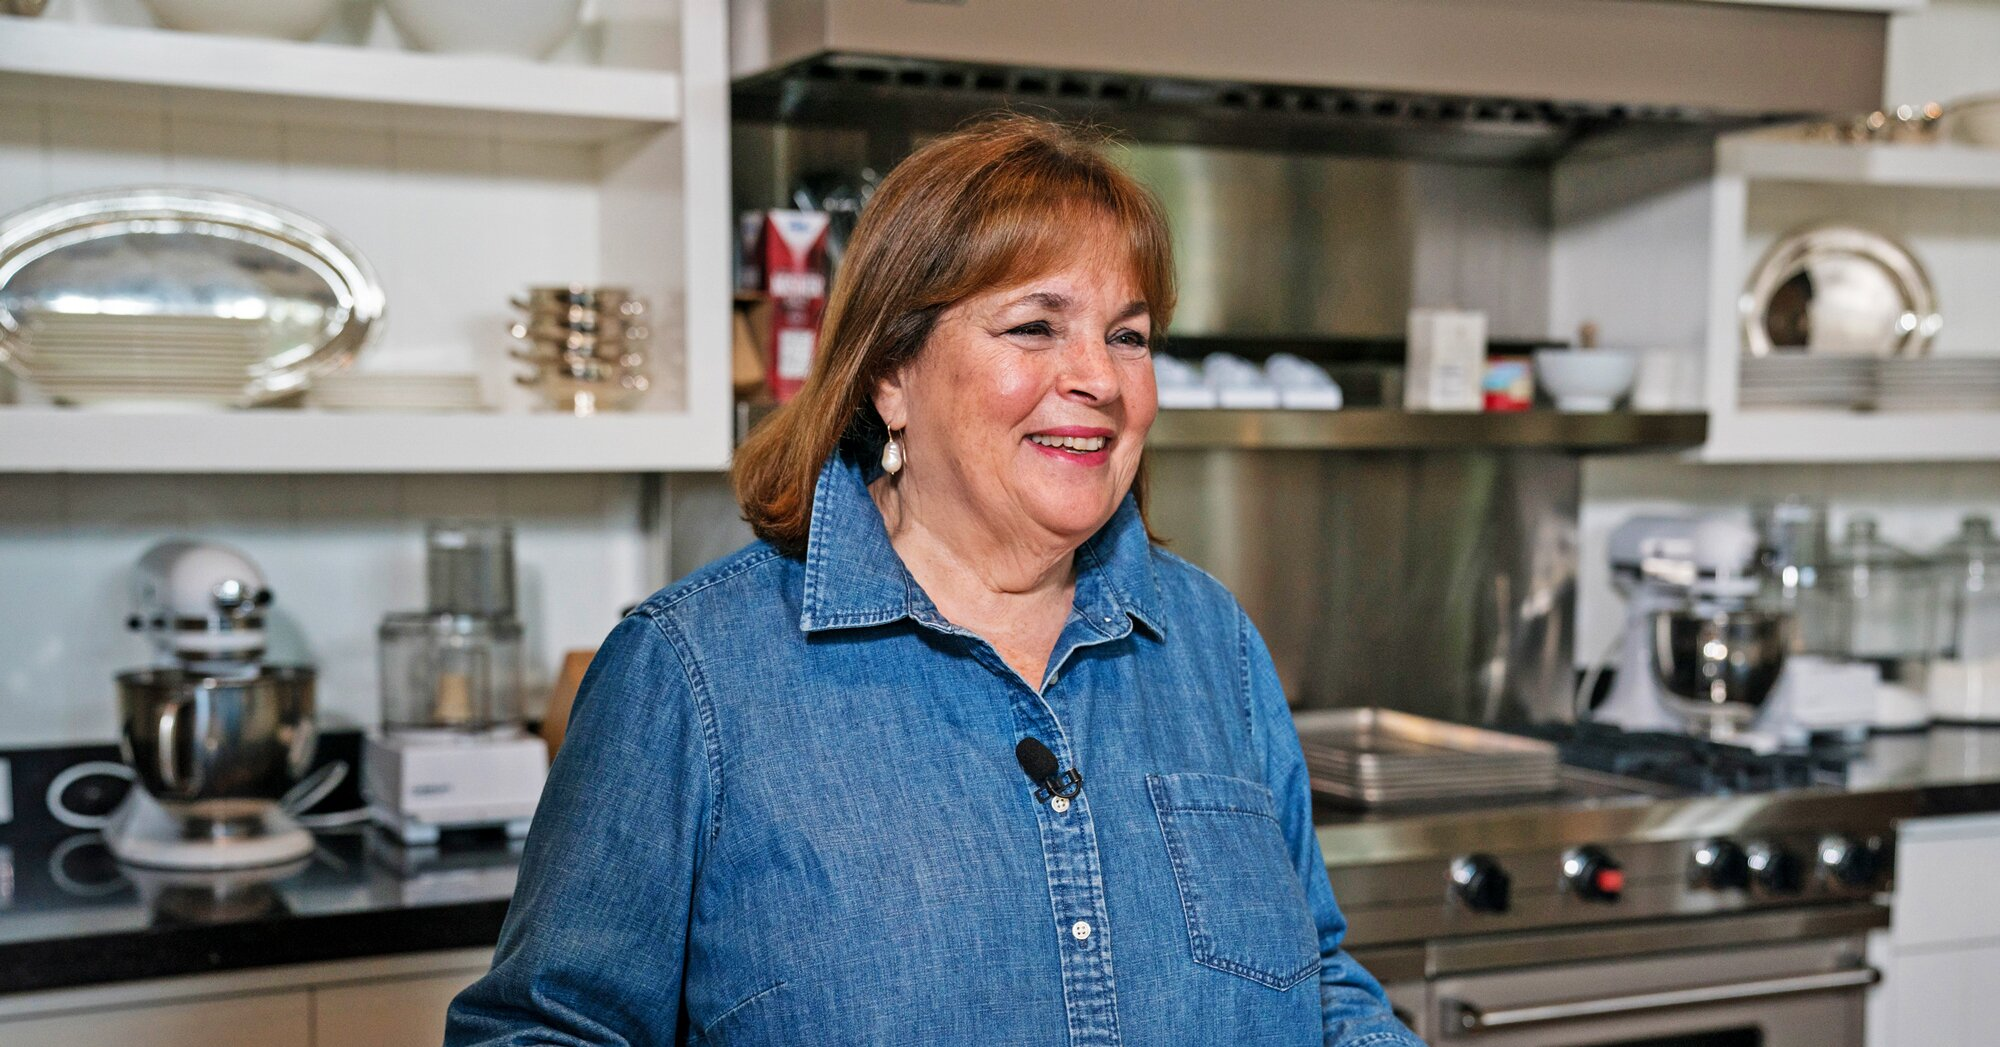 All the Times Ina Garten Fed Our Soul This Year